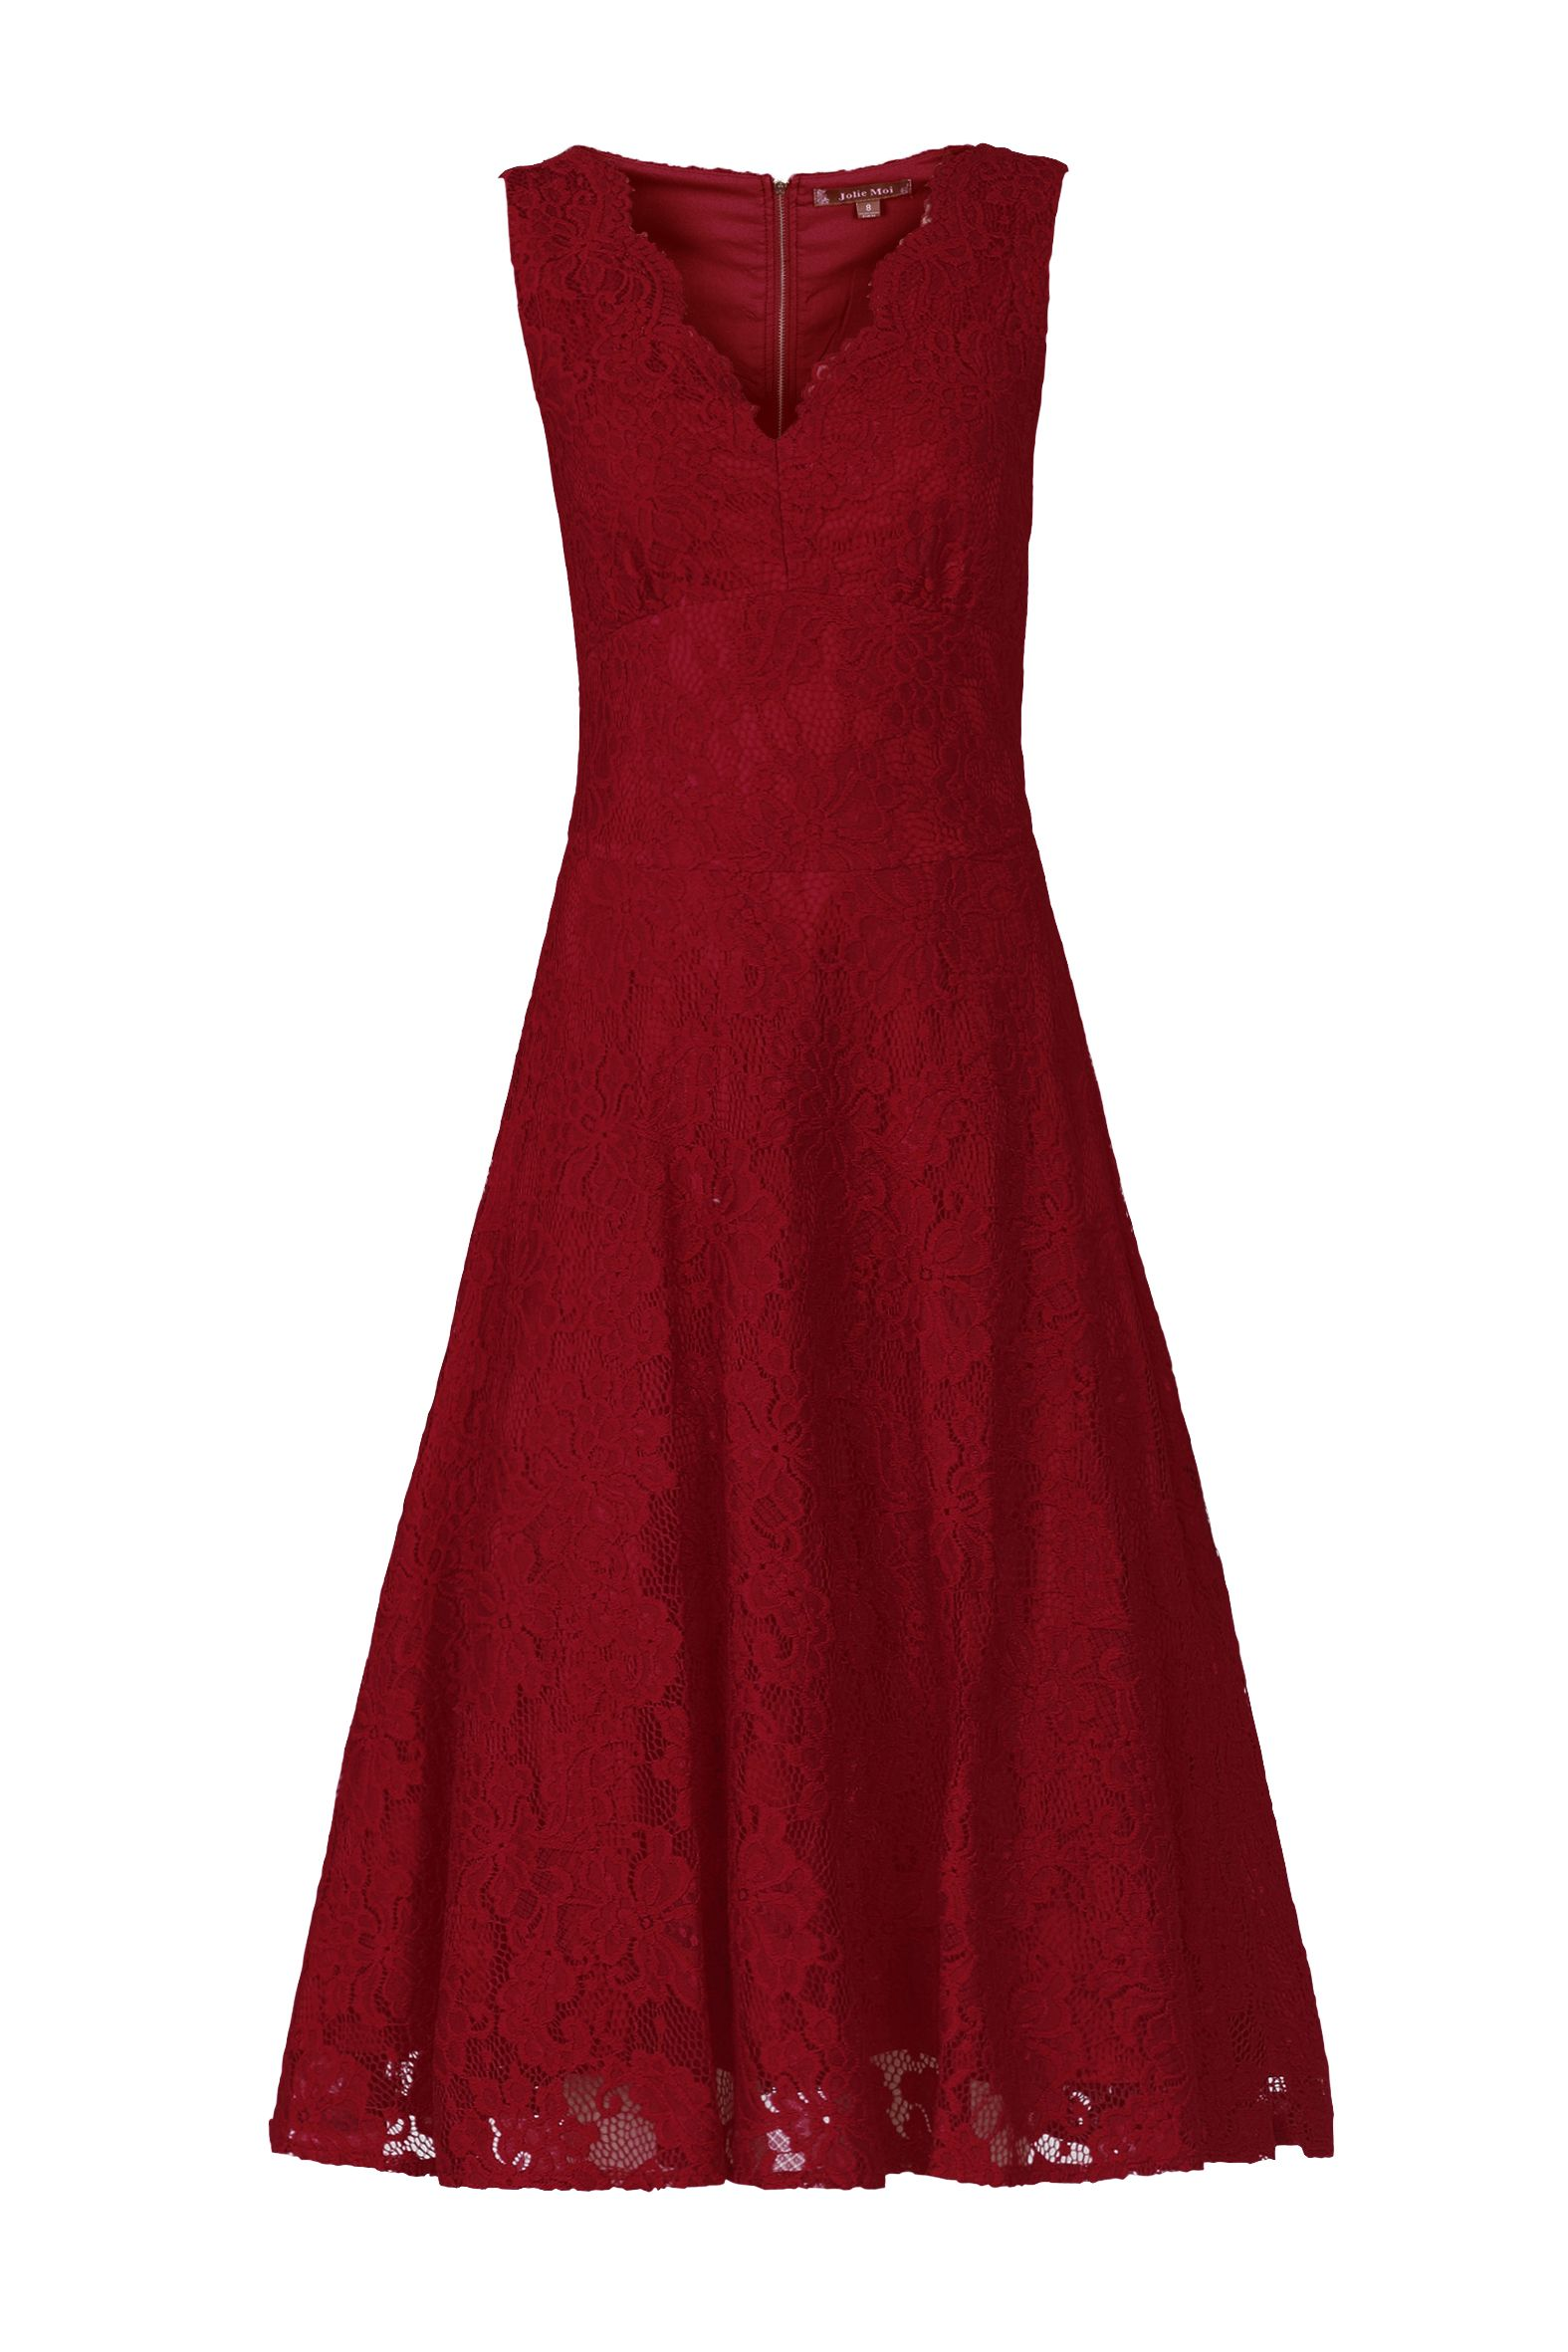 Jolie Moi Scalloped V-Neck Lace Dress, Red